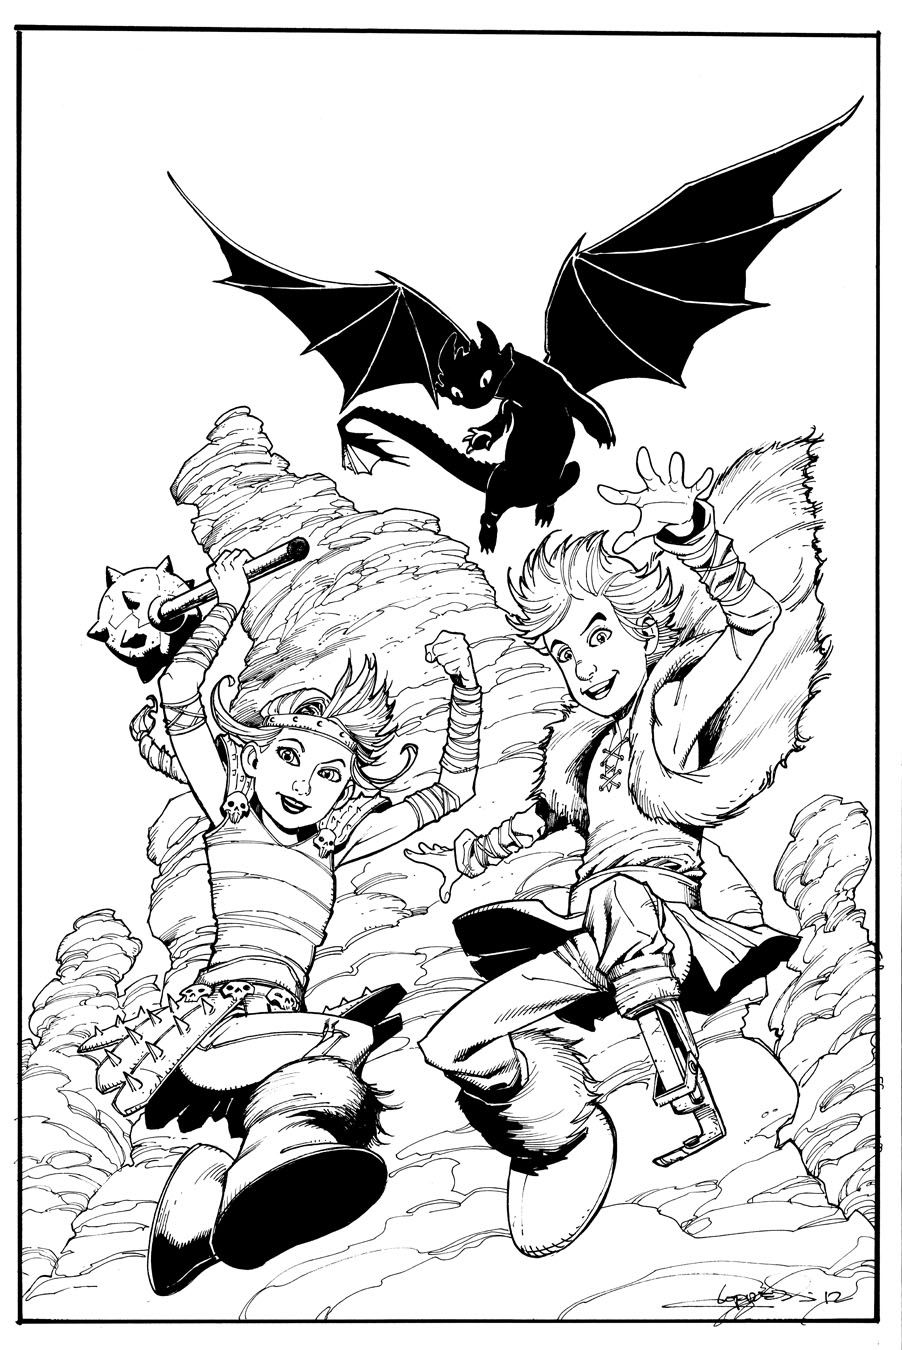 how to train your dragon coloring pages online httyd coloring pages coloring home coloring to pages train online how dragon your